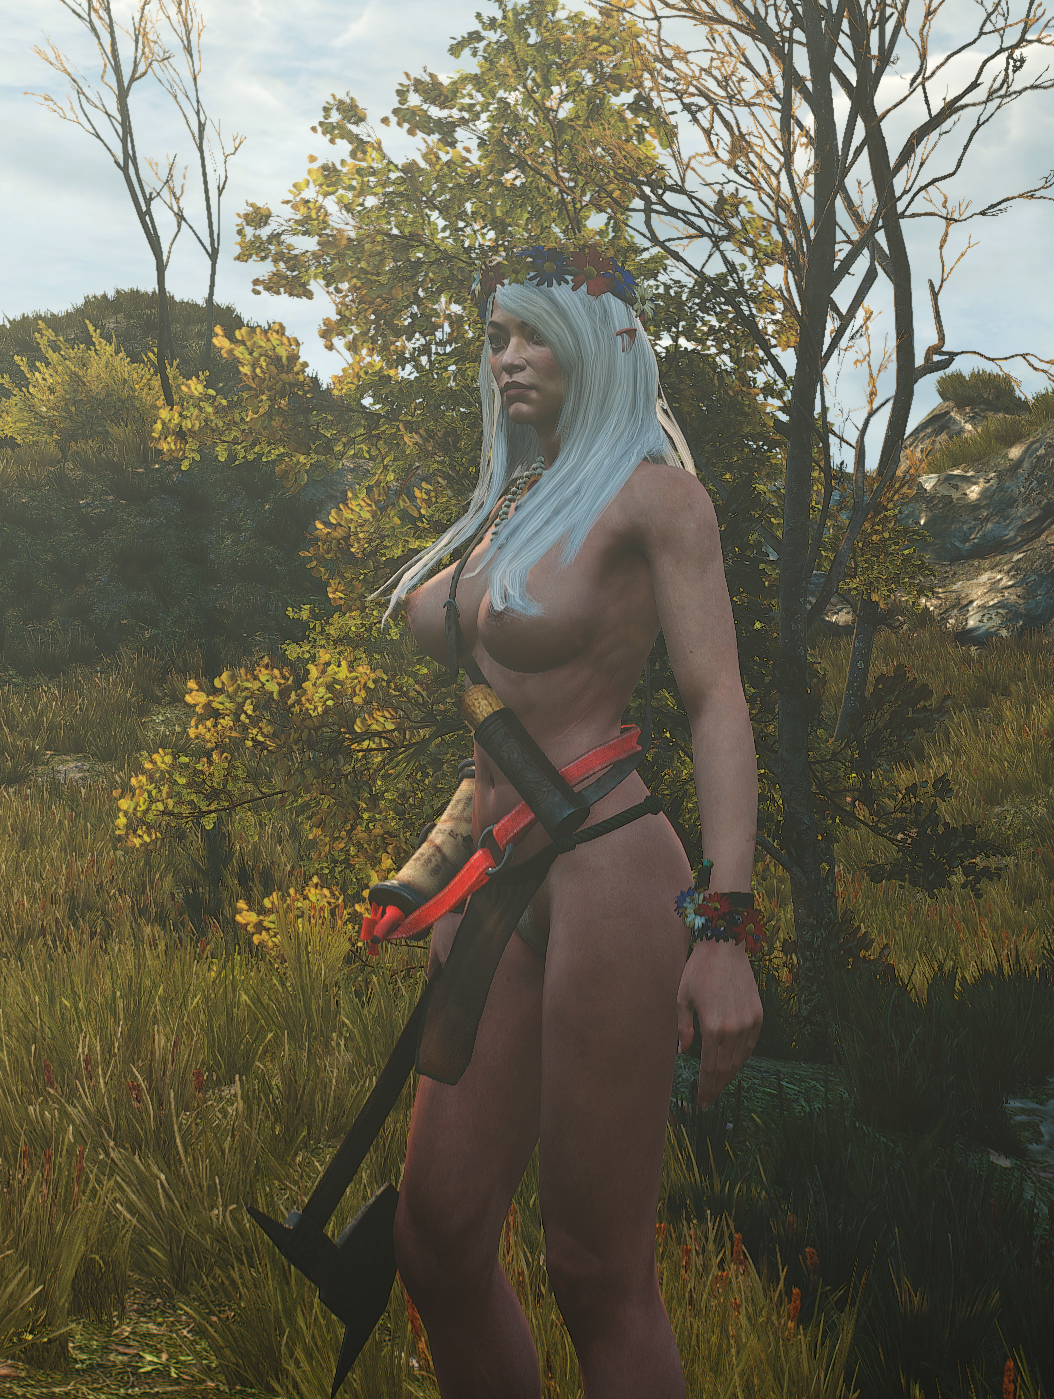 3d armwear axe big_breasts elf flower_in_hair flowers jewelry loincloth long_ears necklace outdoors pubic_hair revealing_clothes the_witcher the_witcher_3 trees tribal weapon white_hair